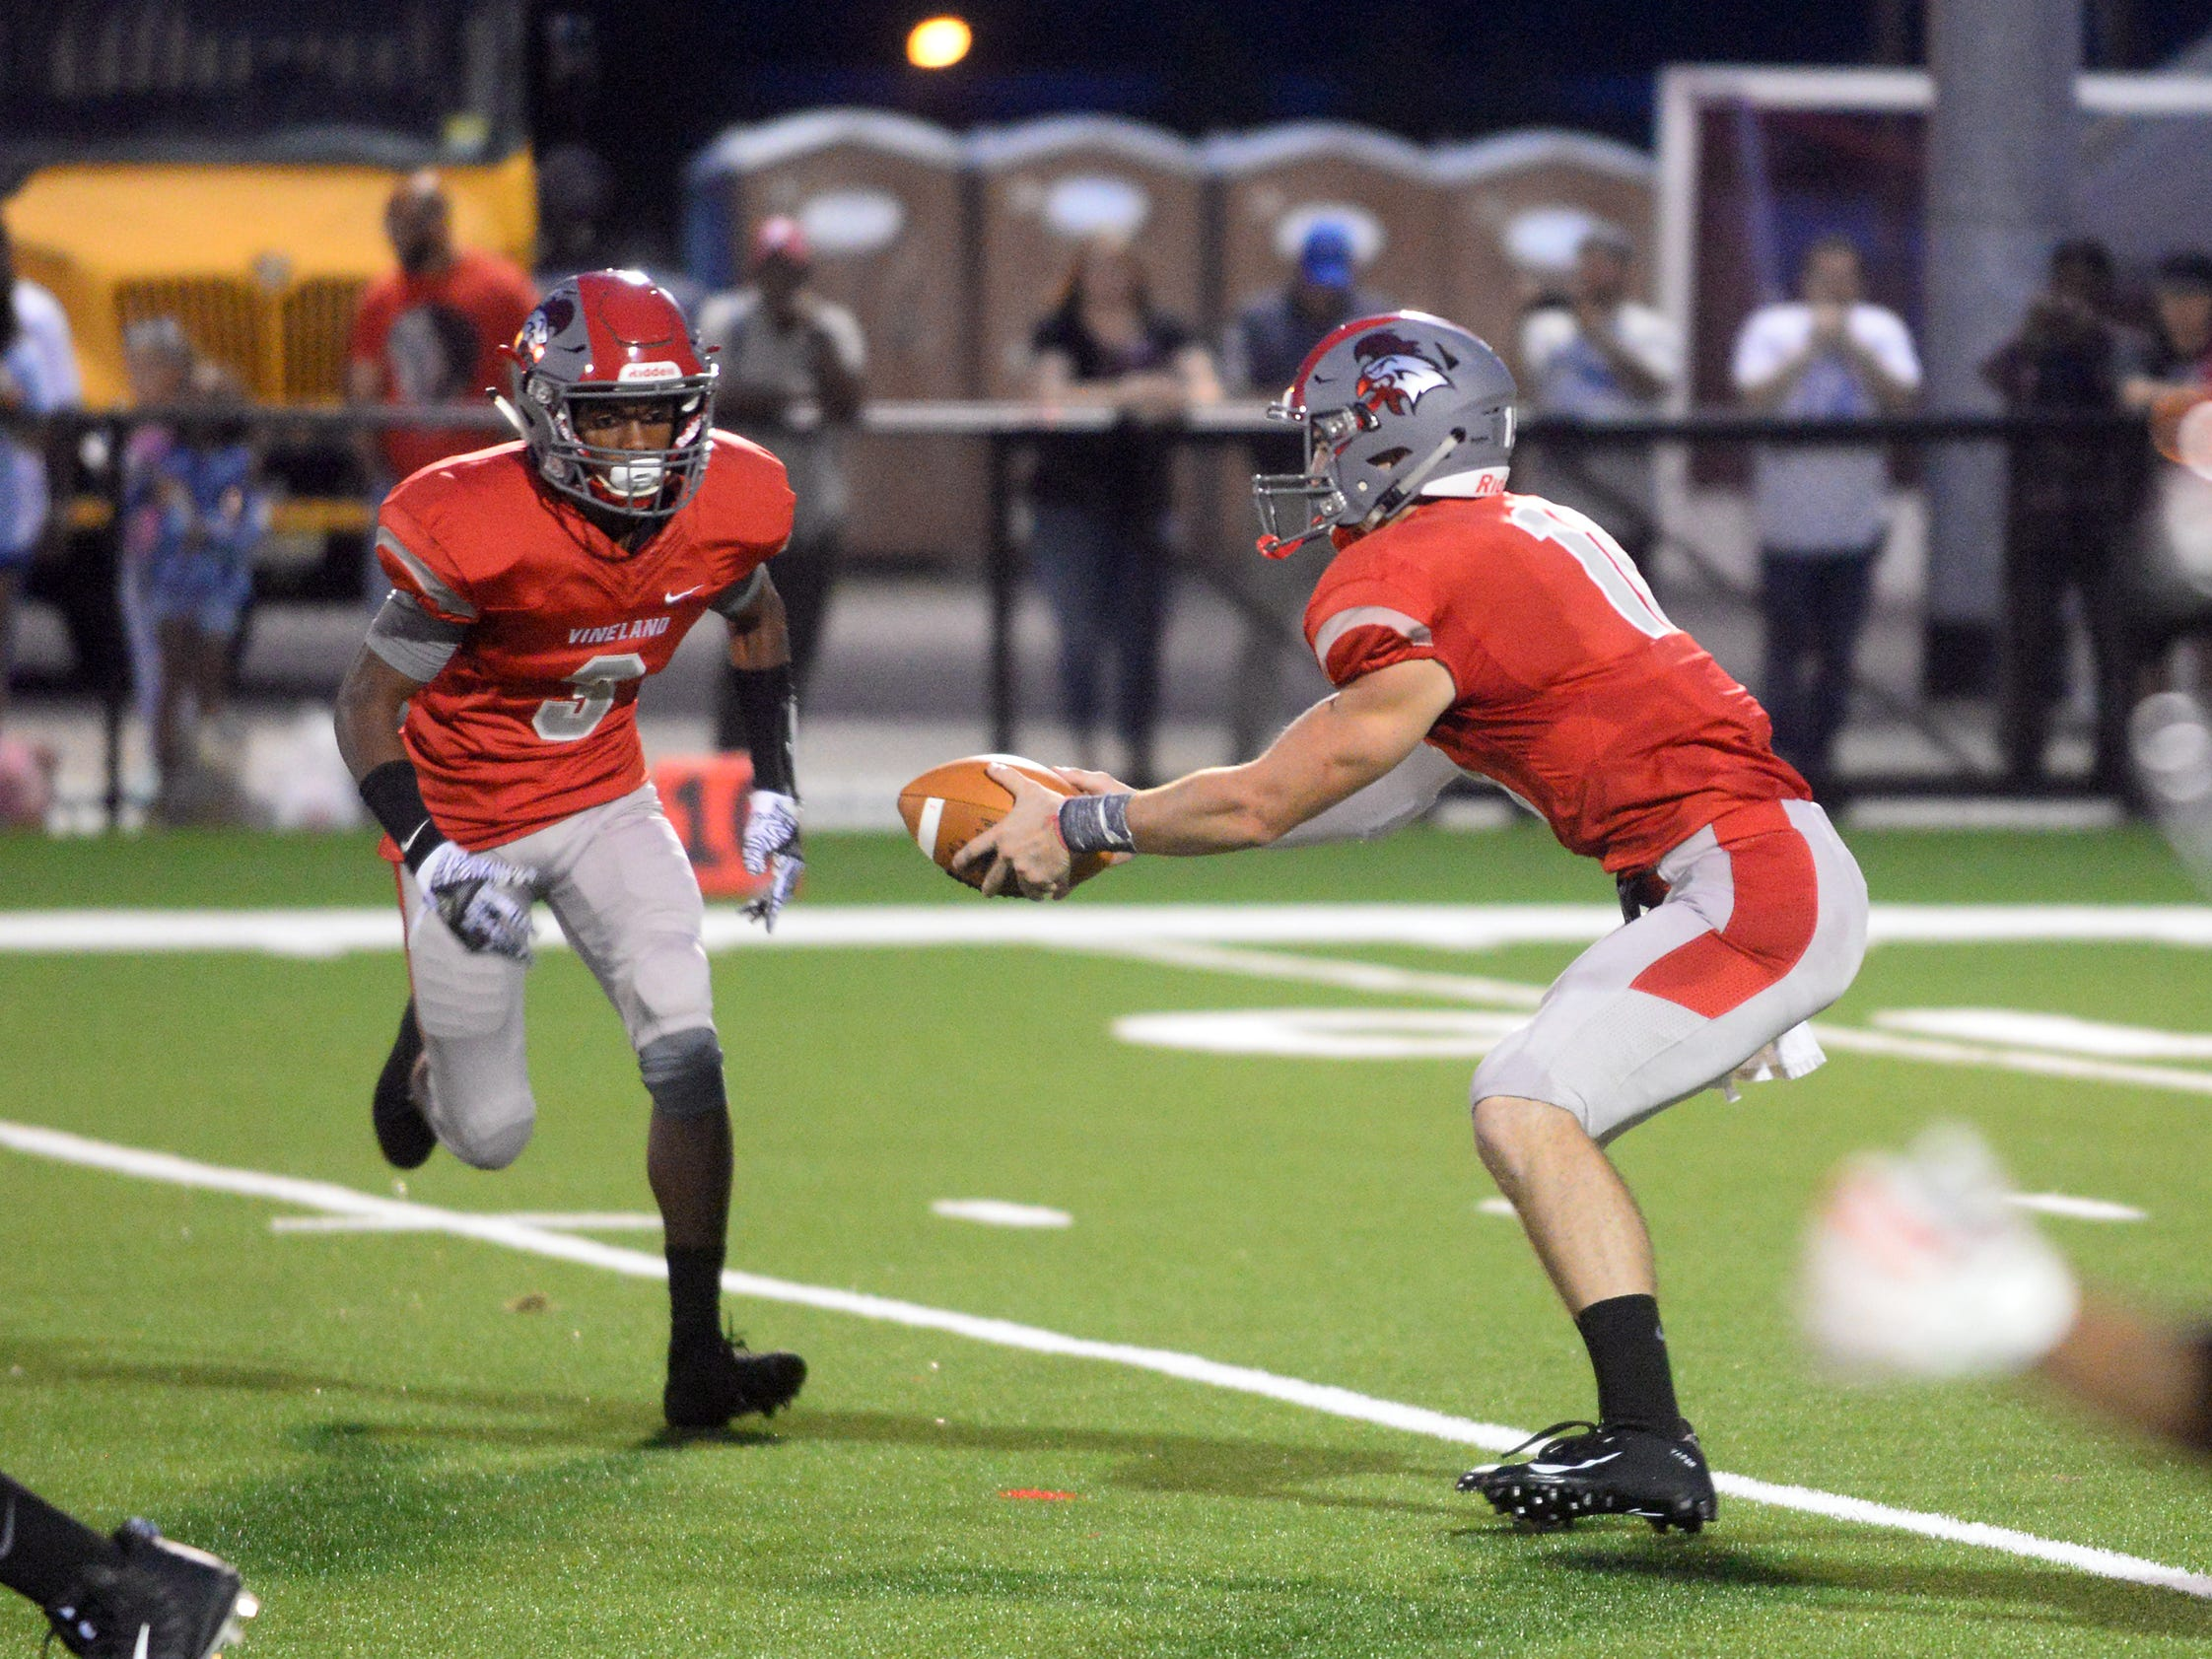 Vineland's QB Ryan Shelton (10) hands the ball off to Jonathan Toney Jr. (3) during a game against Williamstown. The visiting Braves topped The Fighting Clan 24-7 on Friday, August 31.